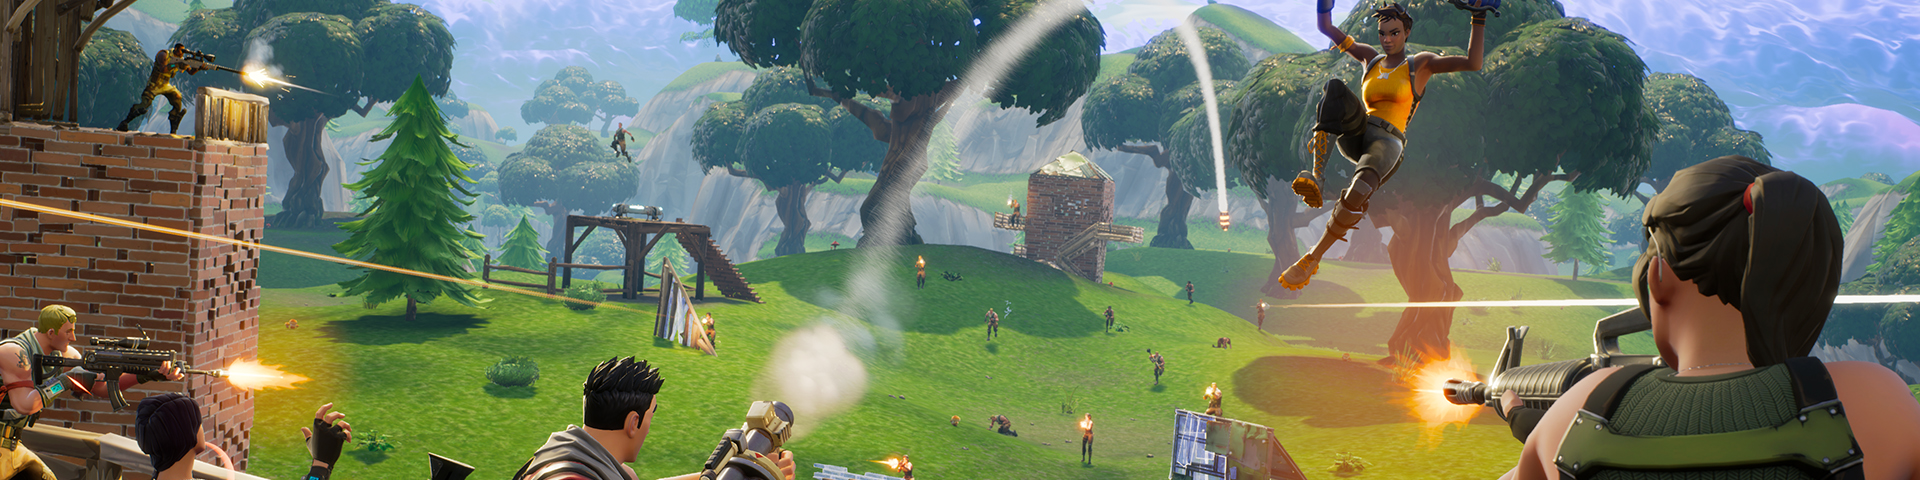 Fortnite-Battle-Royale-Hunting-Rifle-guide-Damage-stats-and-tips